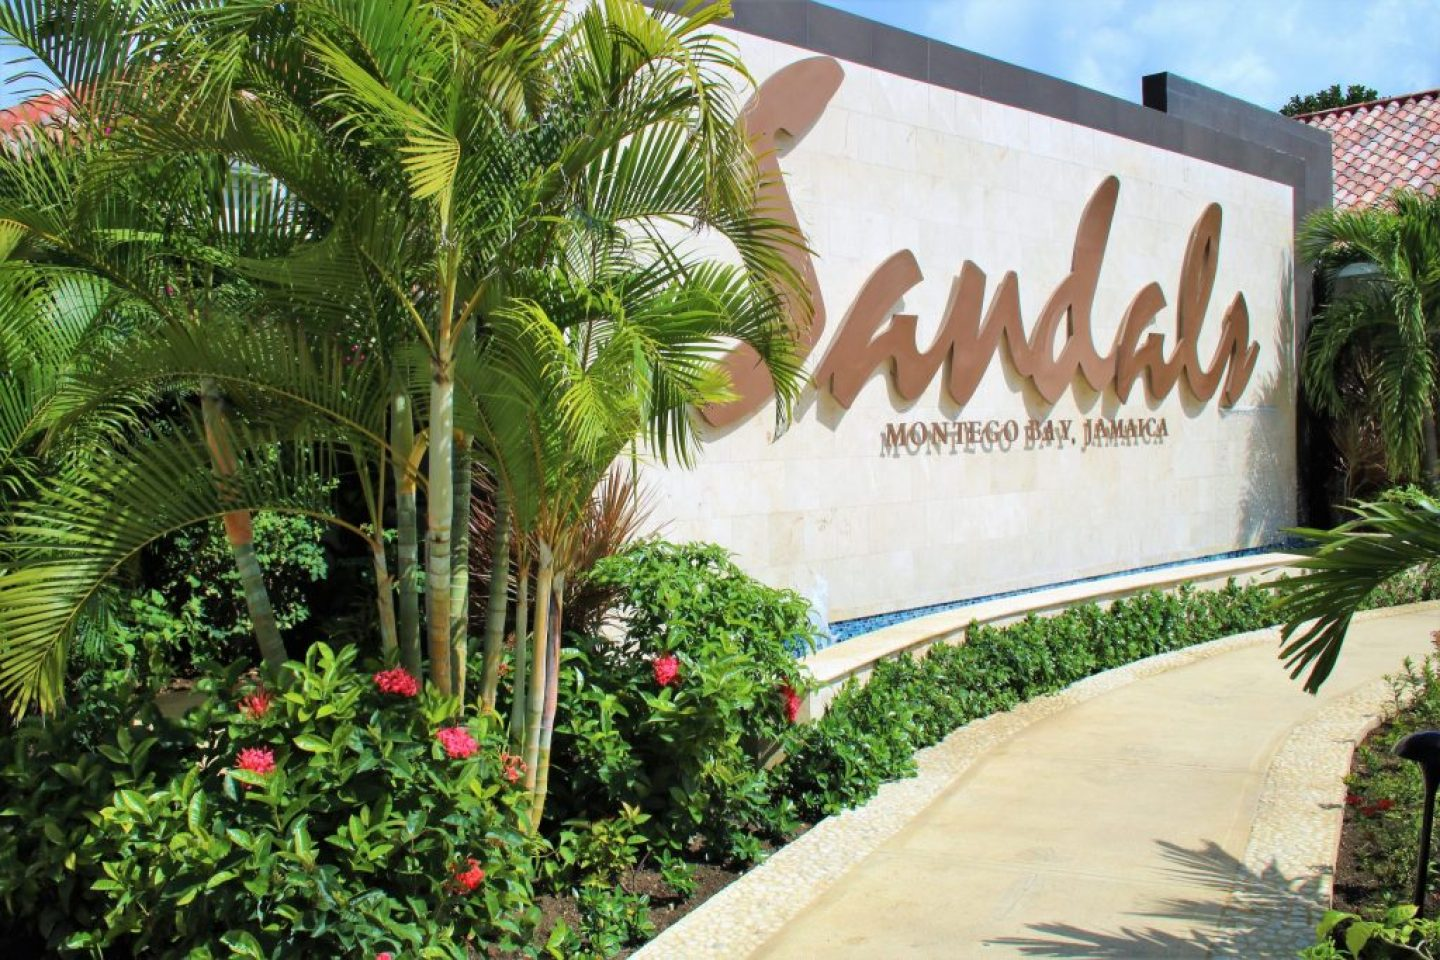 Sandals Montego Bay is the luxury included vacation you NEED in your life.